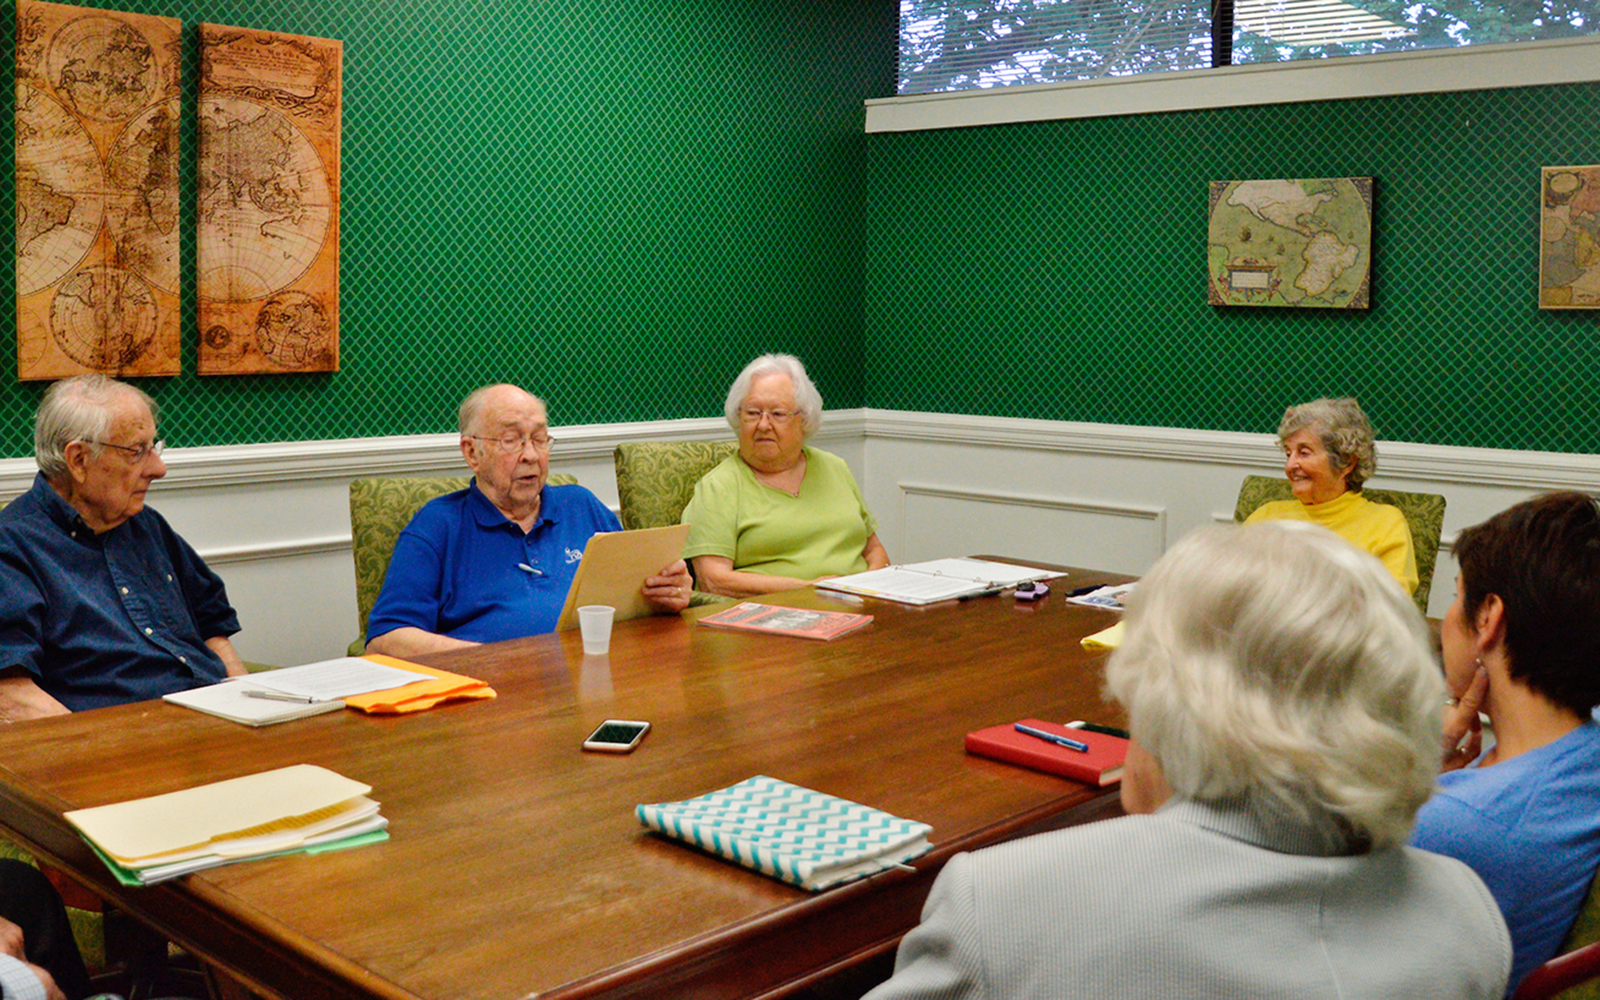 Feet to The Fire Writing Class Sparks Creativity in ECH Residents